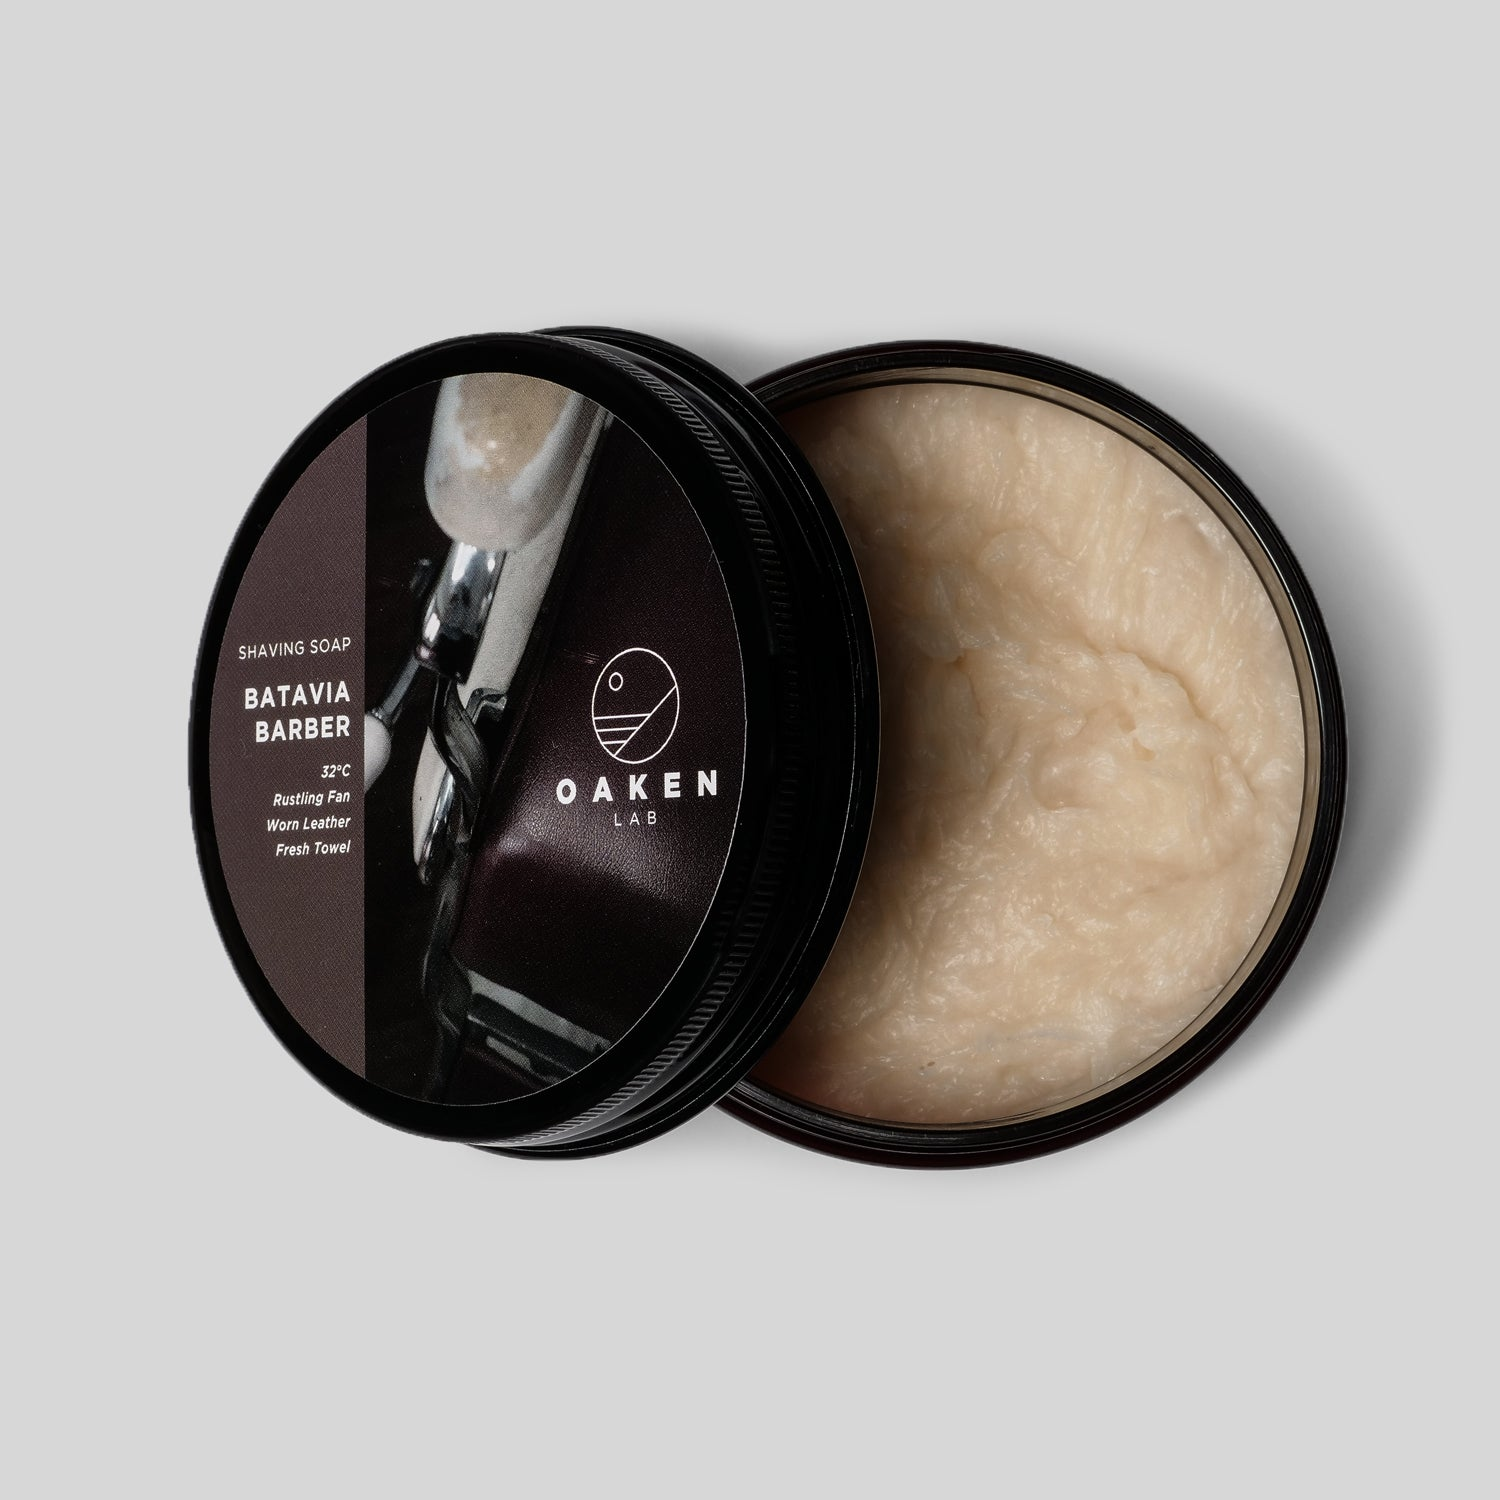 Shaving Soap - Batavia Barber